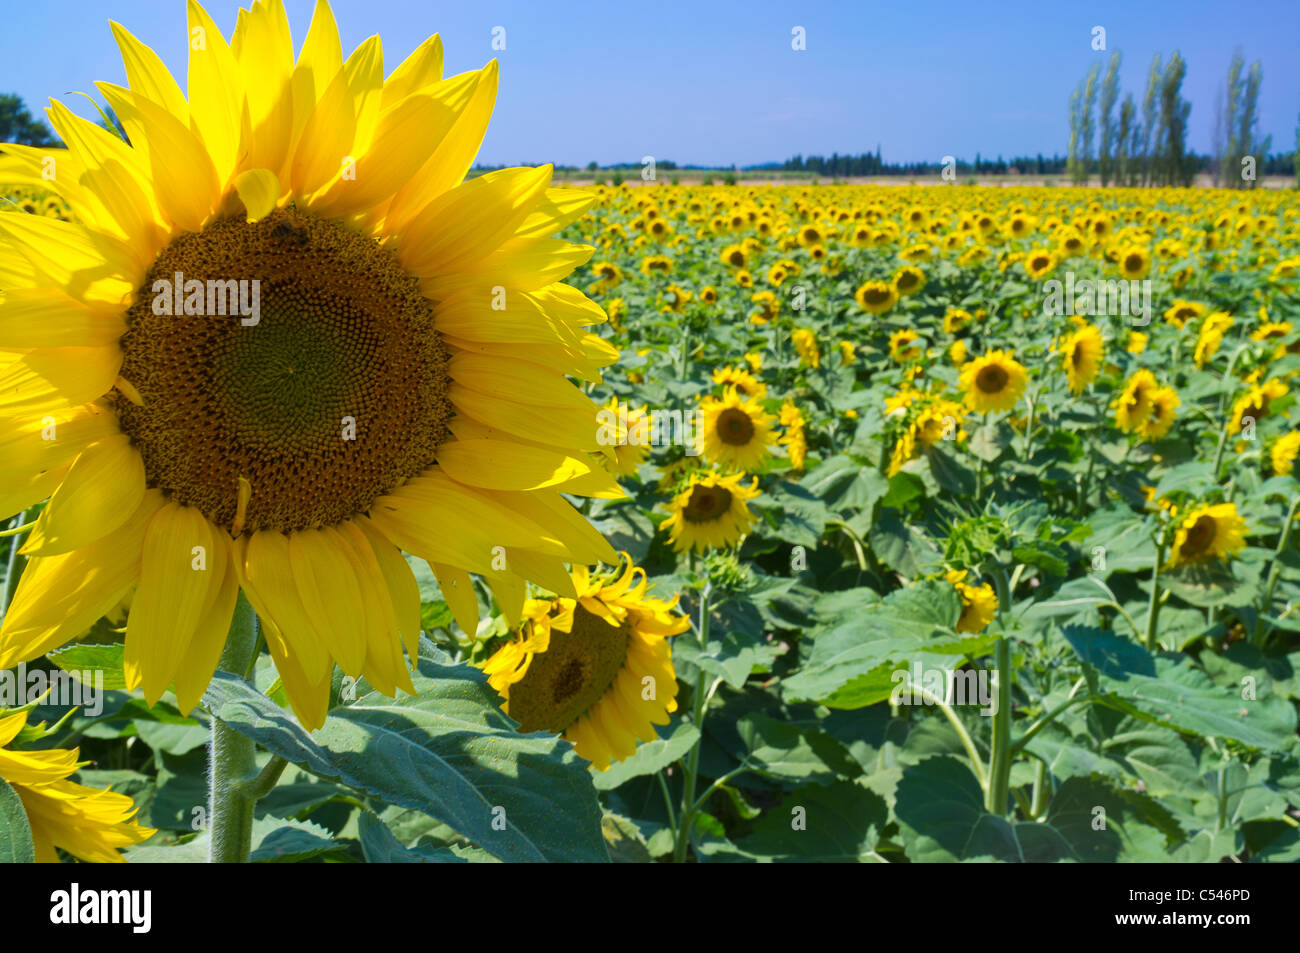 Yellow sunflower in a French field of sunflowers with a blue sky - Stock Image